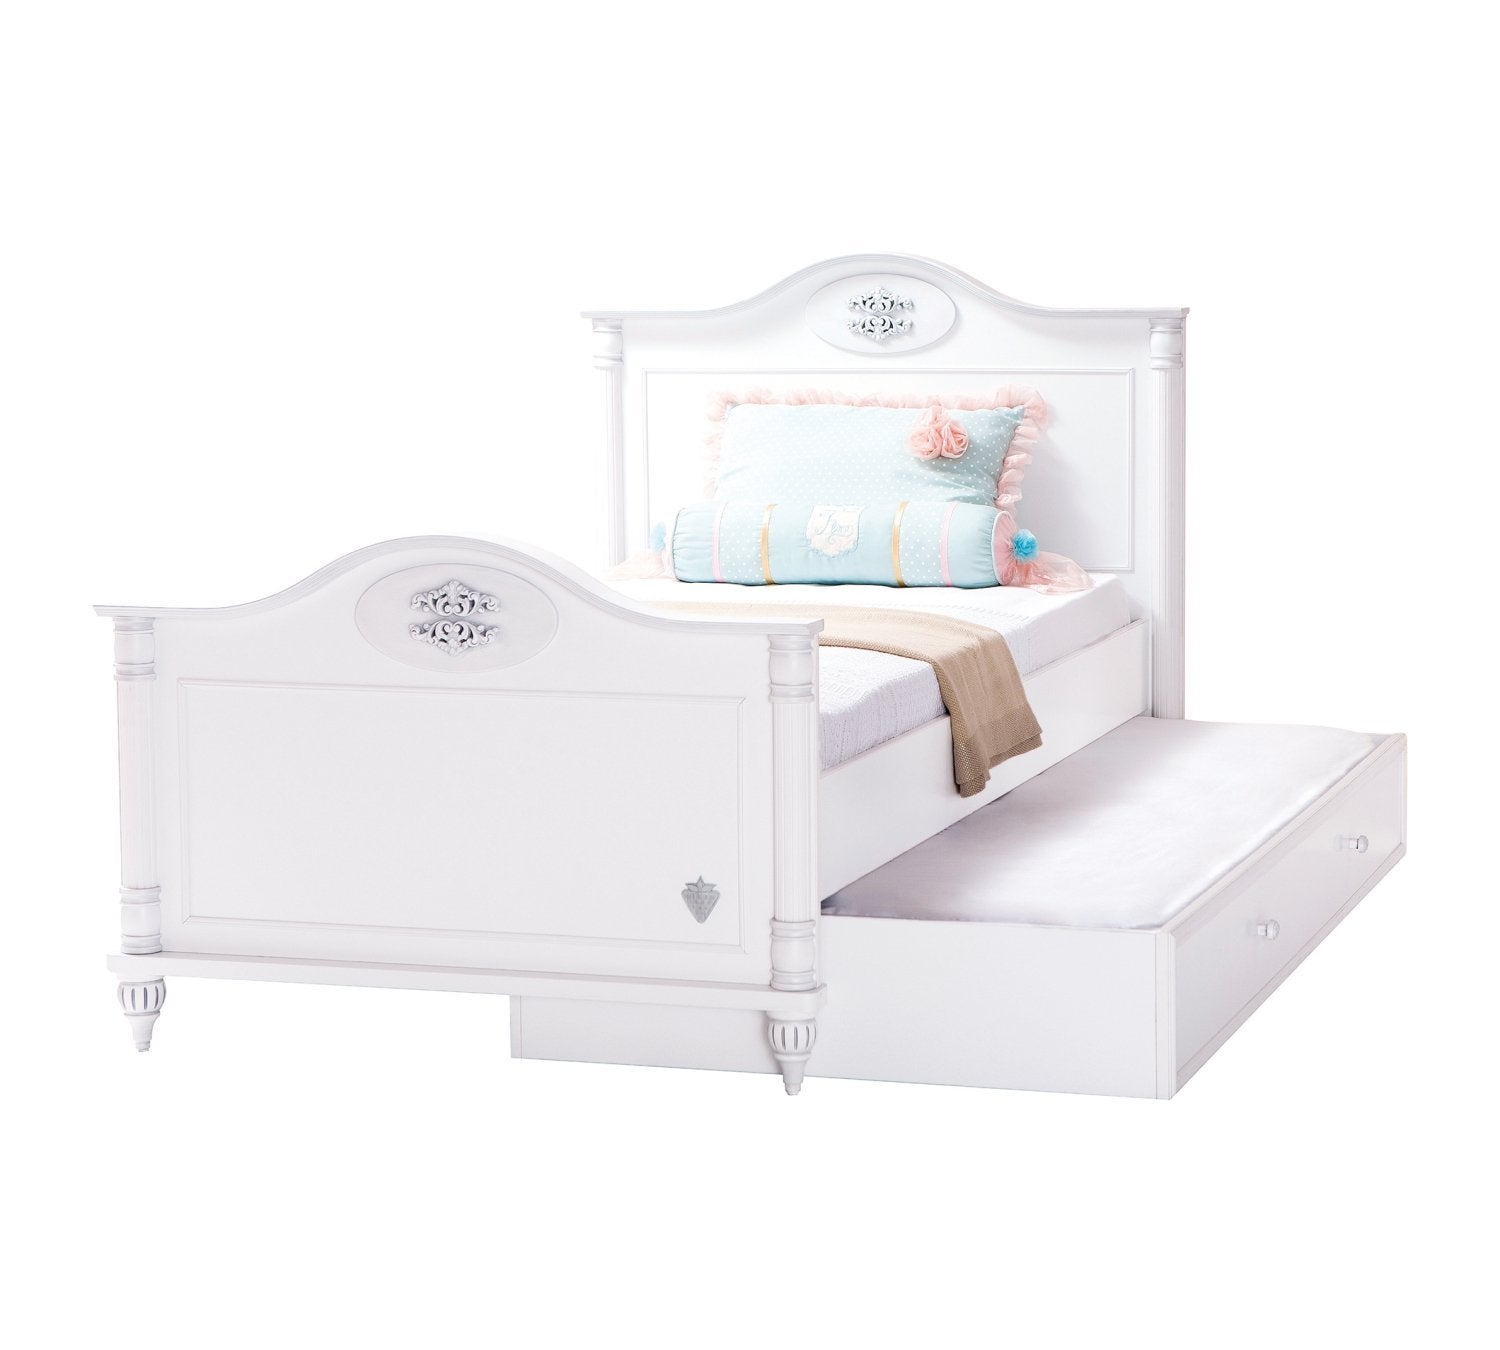 Cilek Romantic Bed with pull out drawer (120x200 Cm)